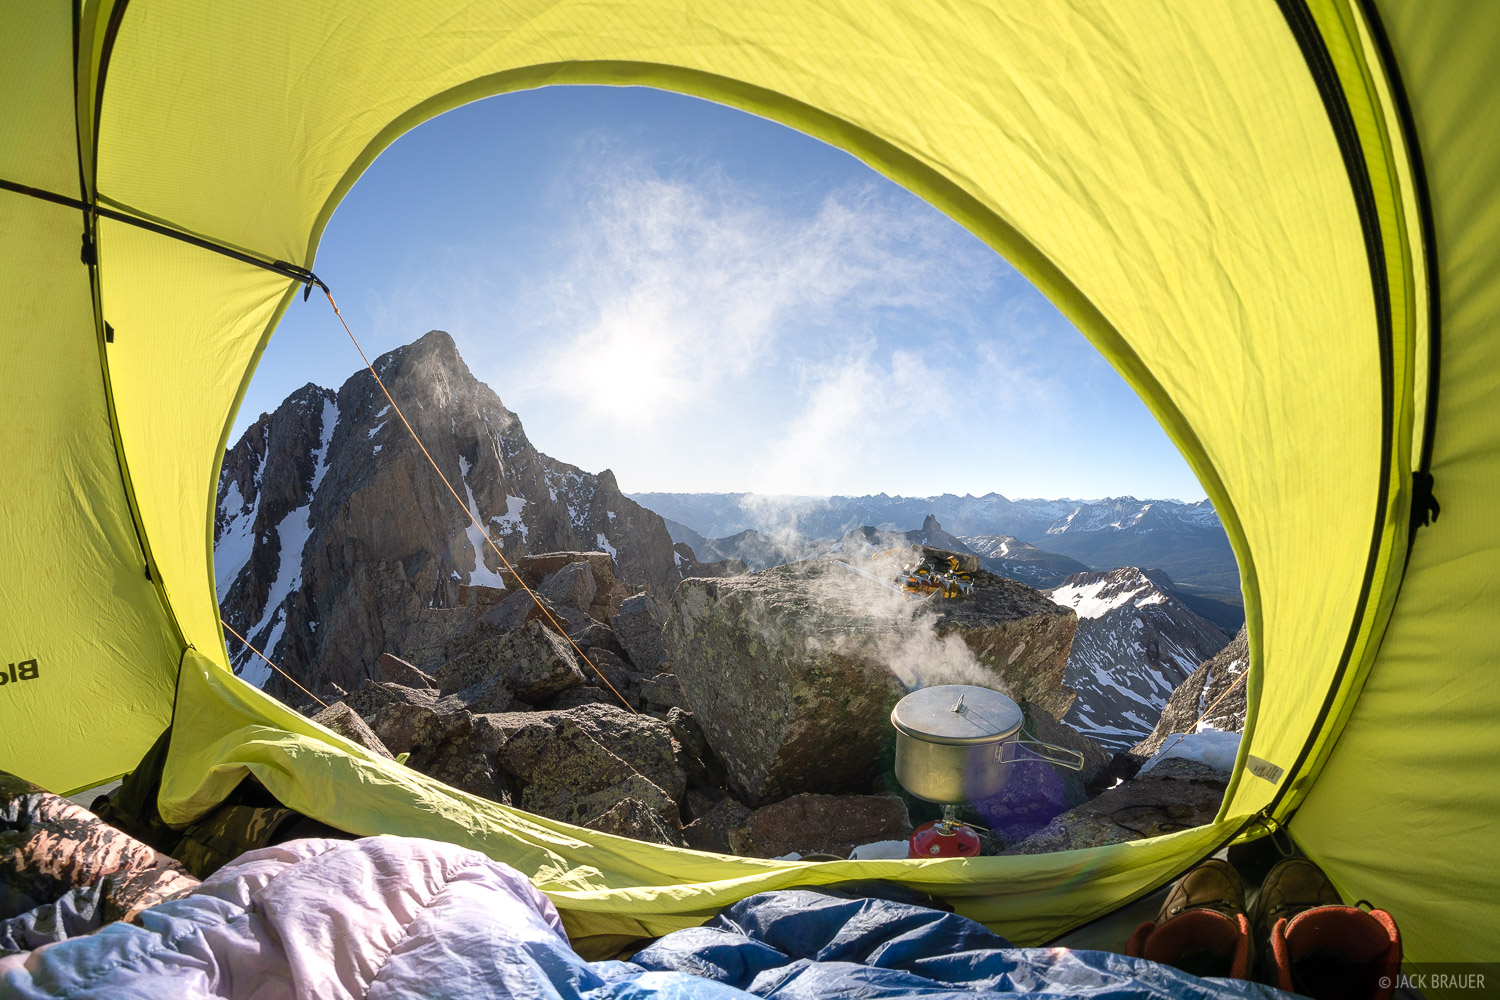 Colorado, Gladstone Peak, Lizard Head Wilderness, San Juan Mountains, San Miguel Range, tent, photo